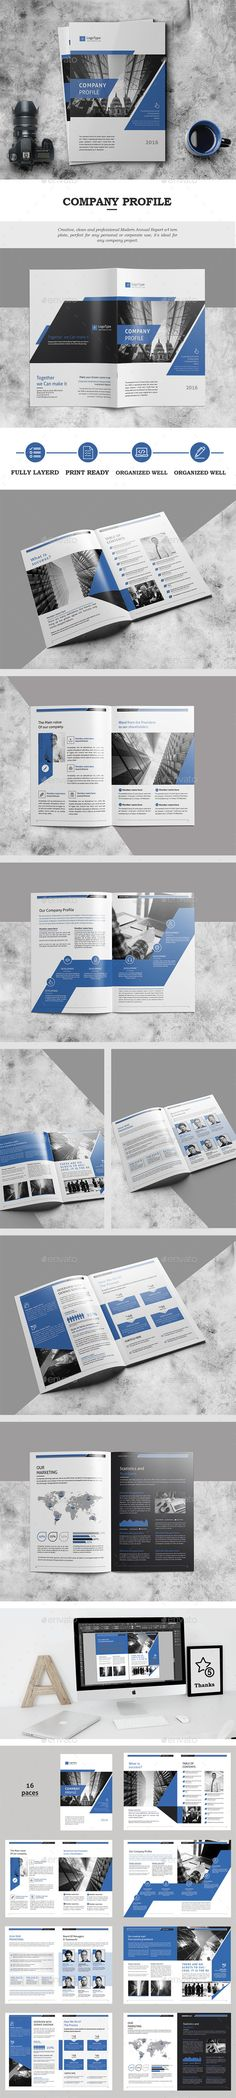 Corporate Business Brochure 16 Pages A4 — InDesign INDD #a4 #corporate • Download ➝ https://graphicriver.net/item/corporate-business-brochure-16-pages-a4/18650250?ref=pxcr